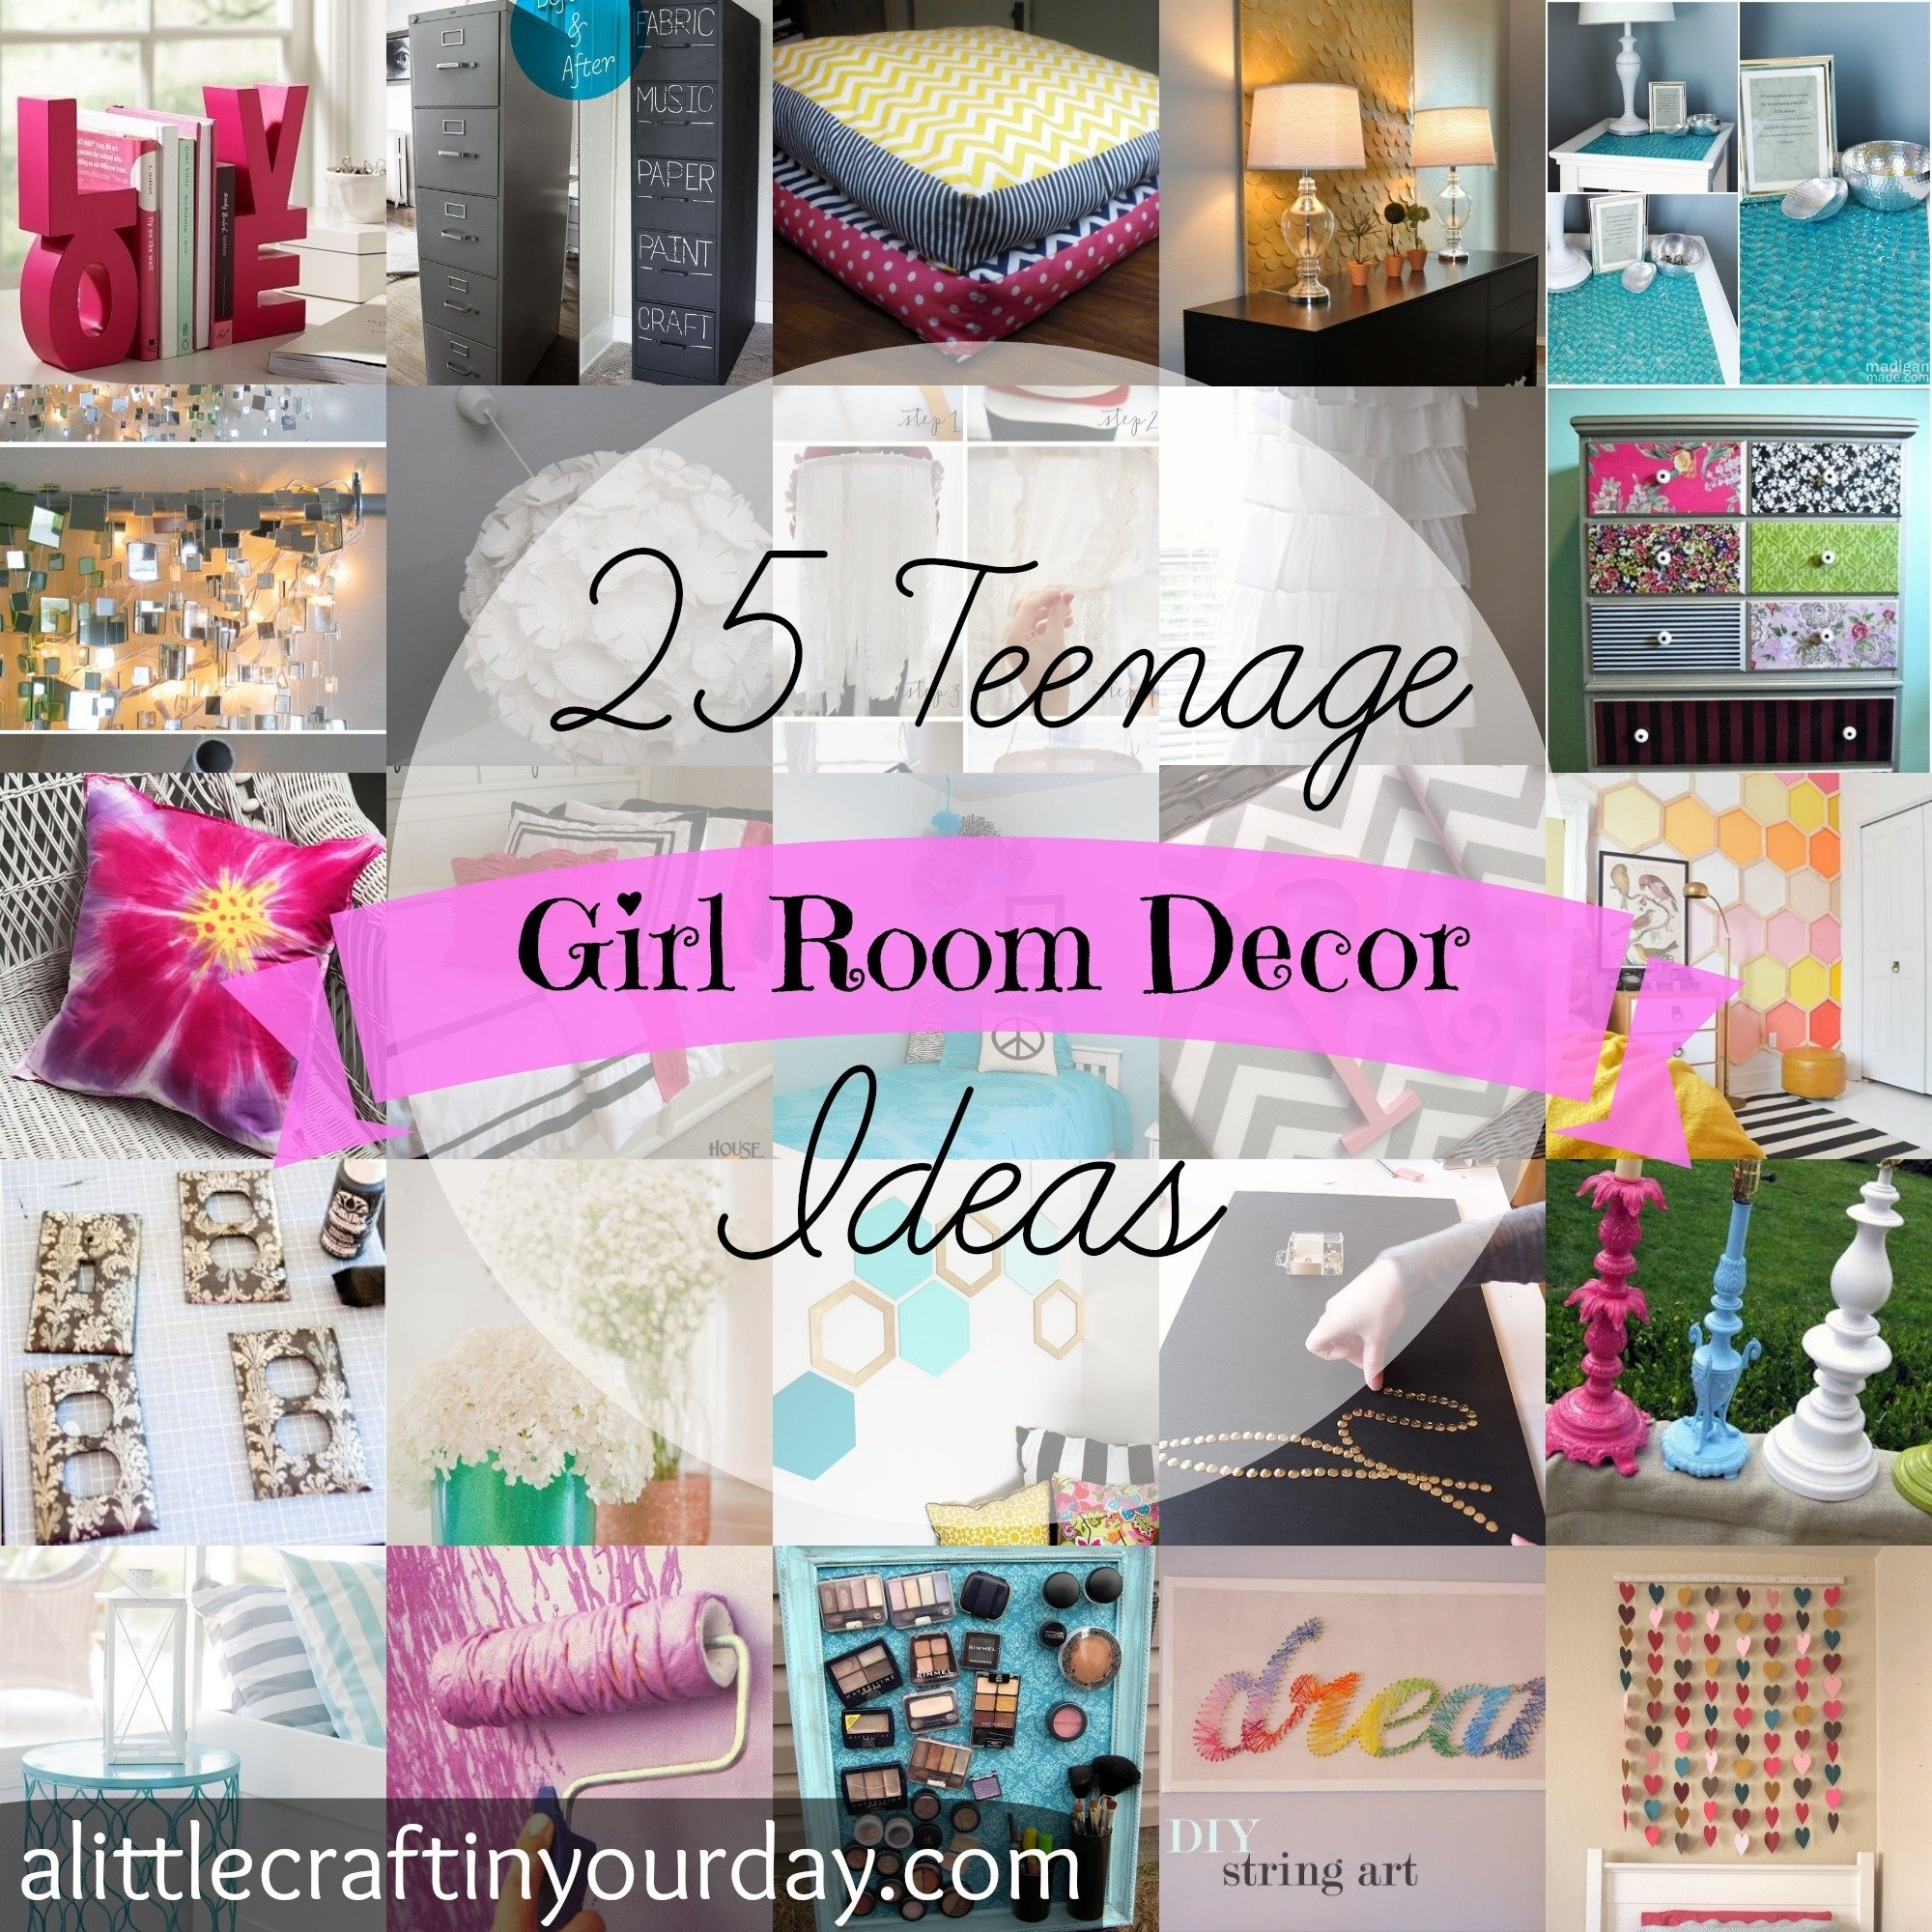 10 Lovely Diy Teenage Bedroom Decorating Ideas 25 teenage girl room decor ideas a little craft in your day 2 2020